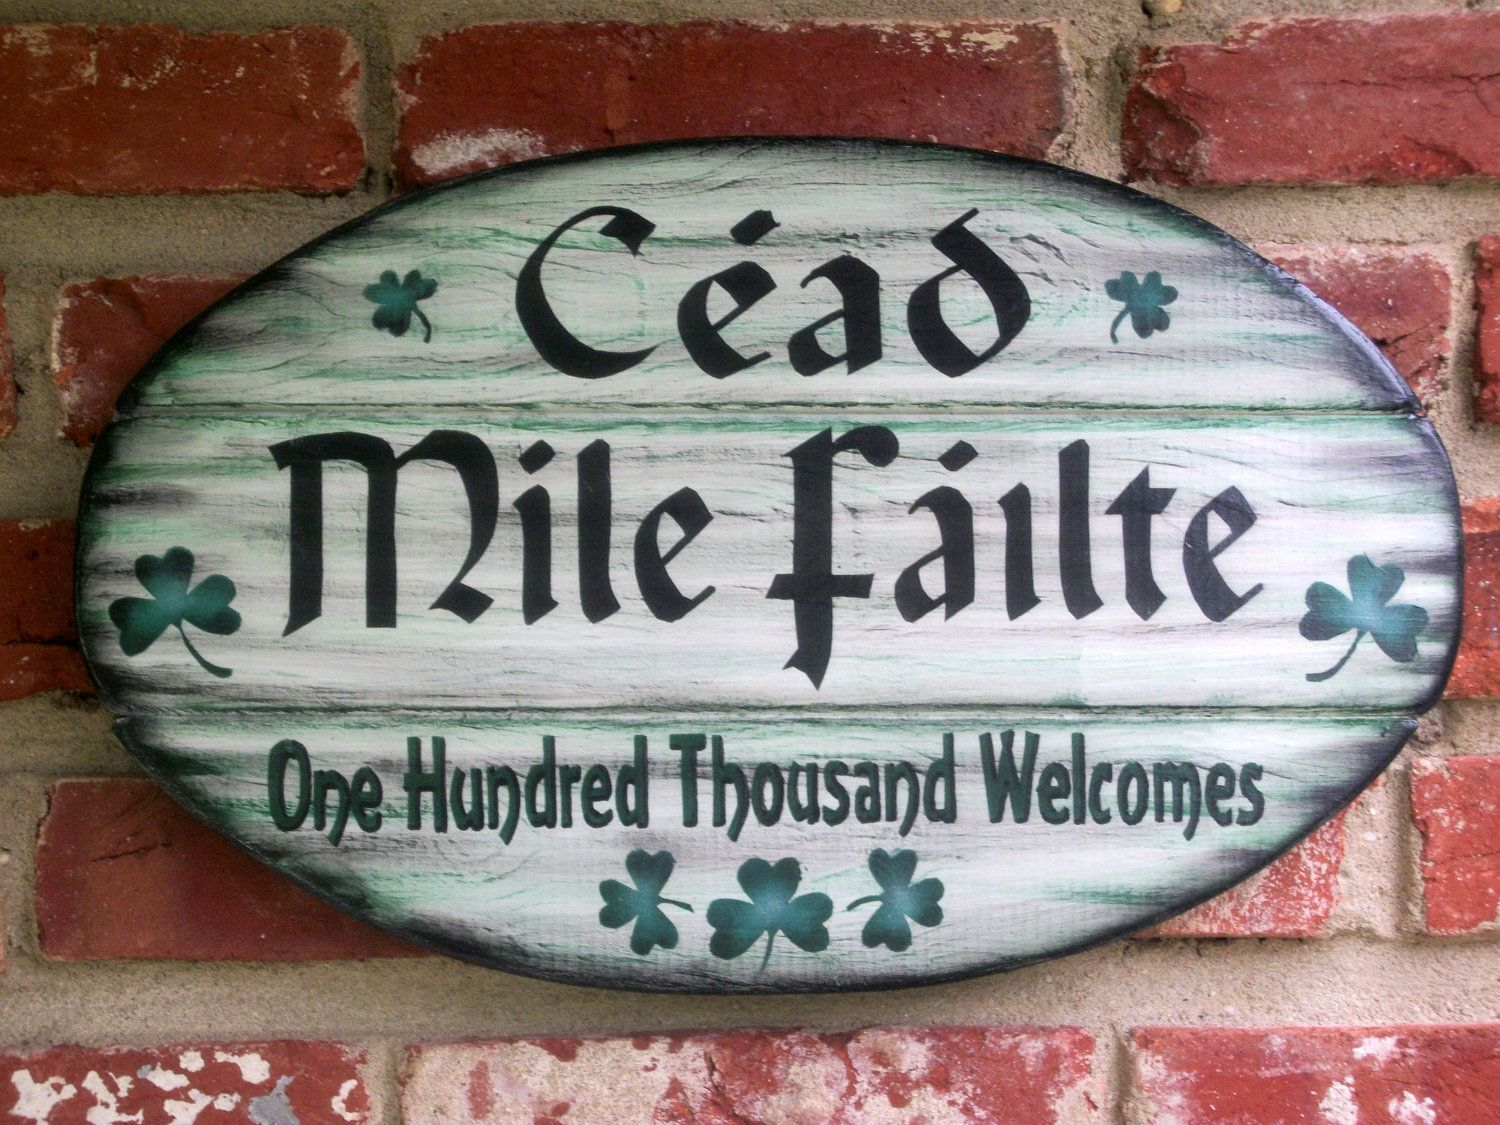 How to read and write gaelic - Irish Welcome Sign Cead Mile Failte Gaelic Greeting Sign Plaque 29 95